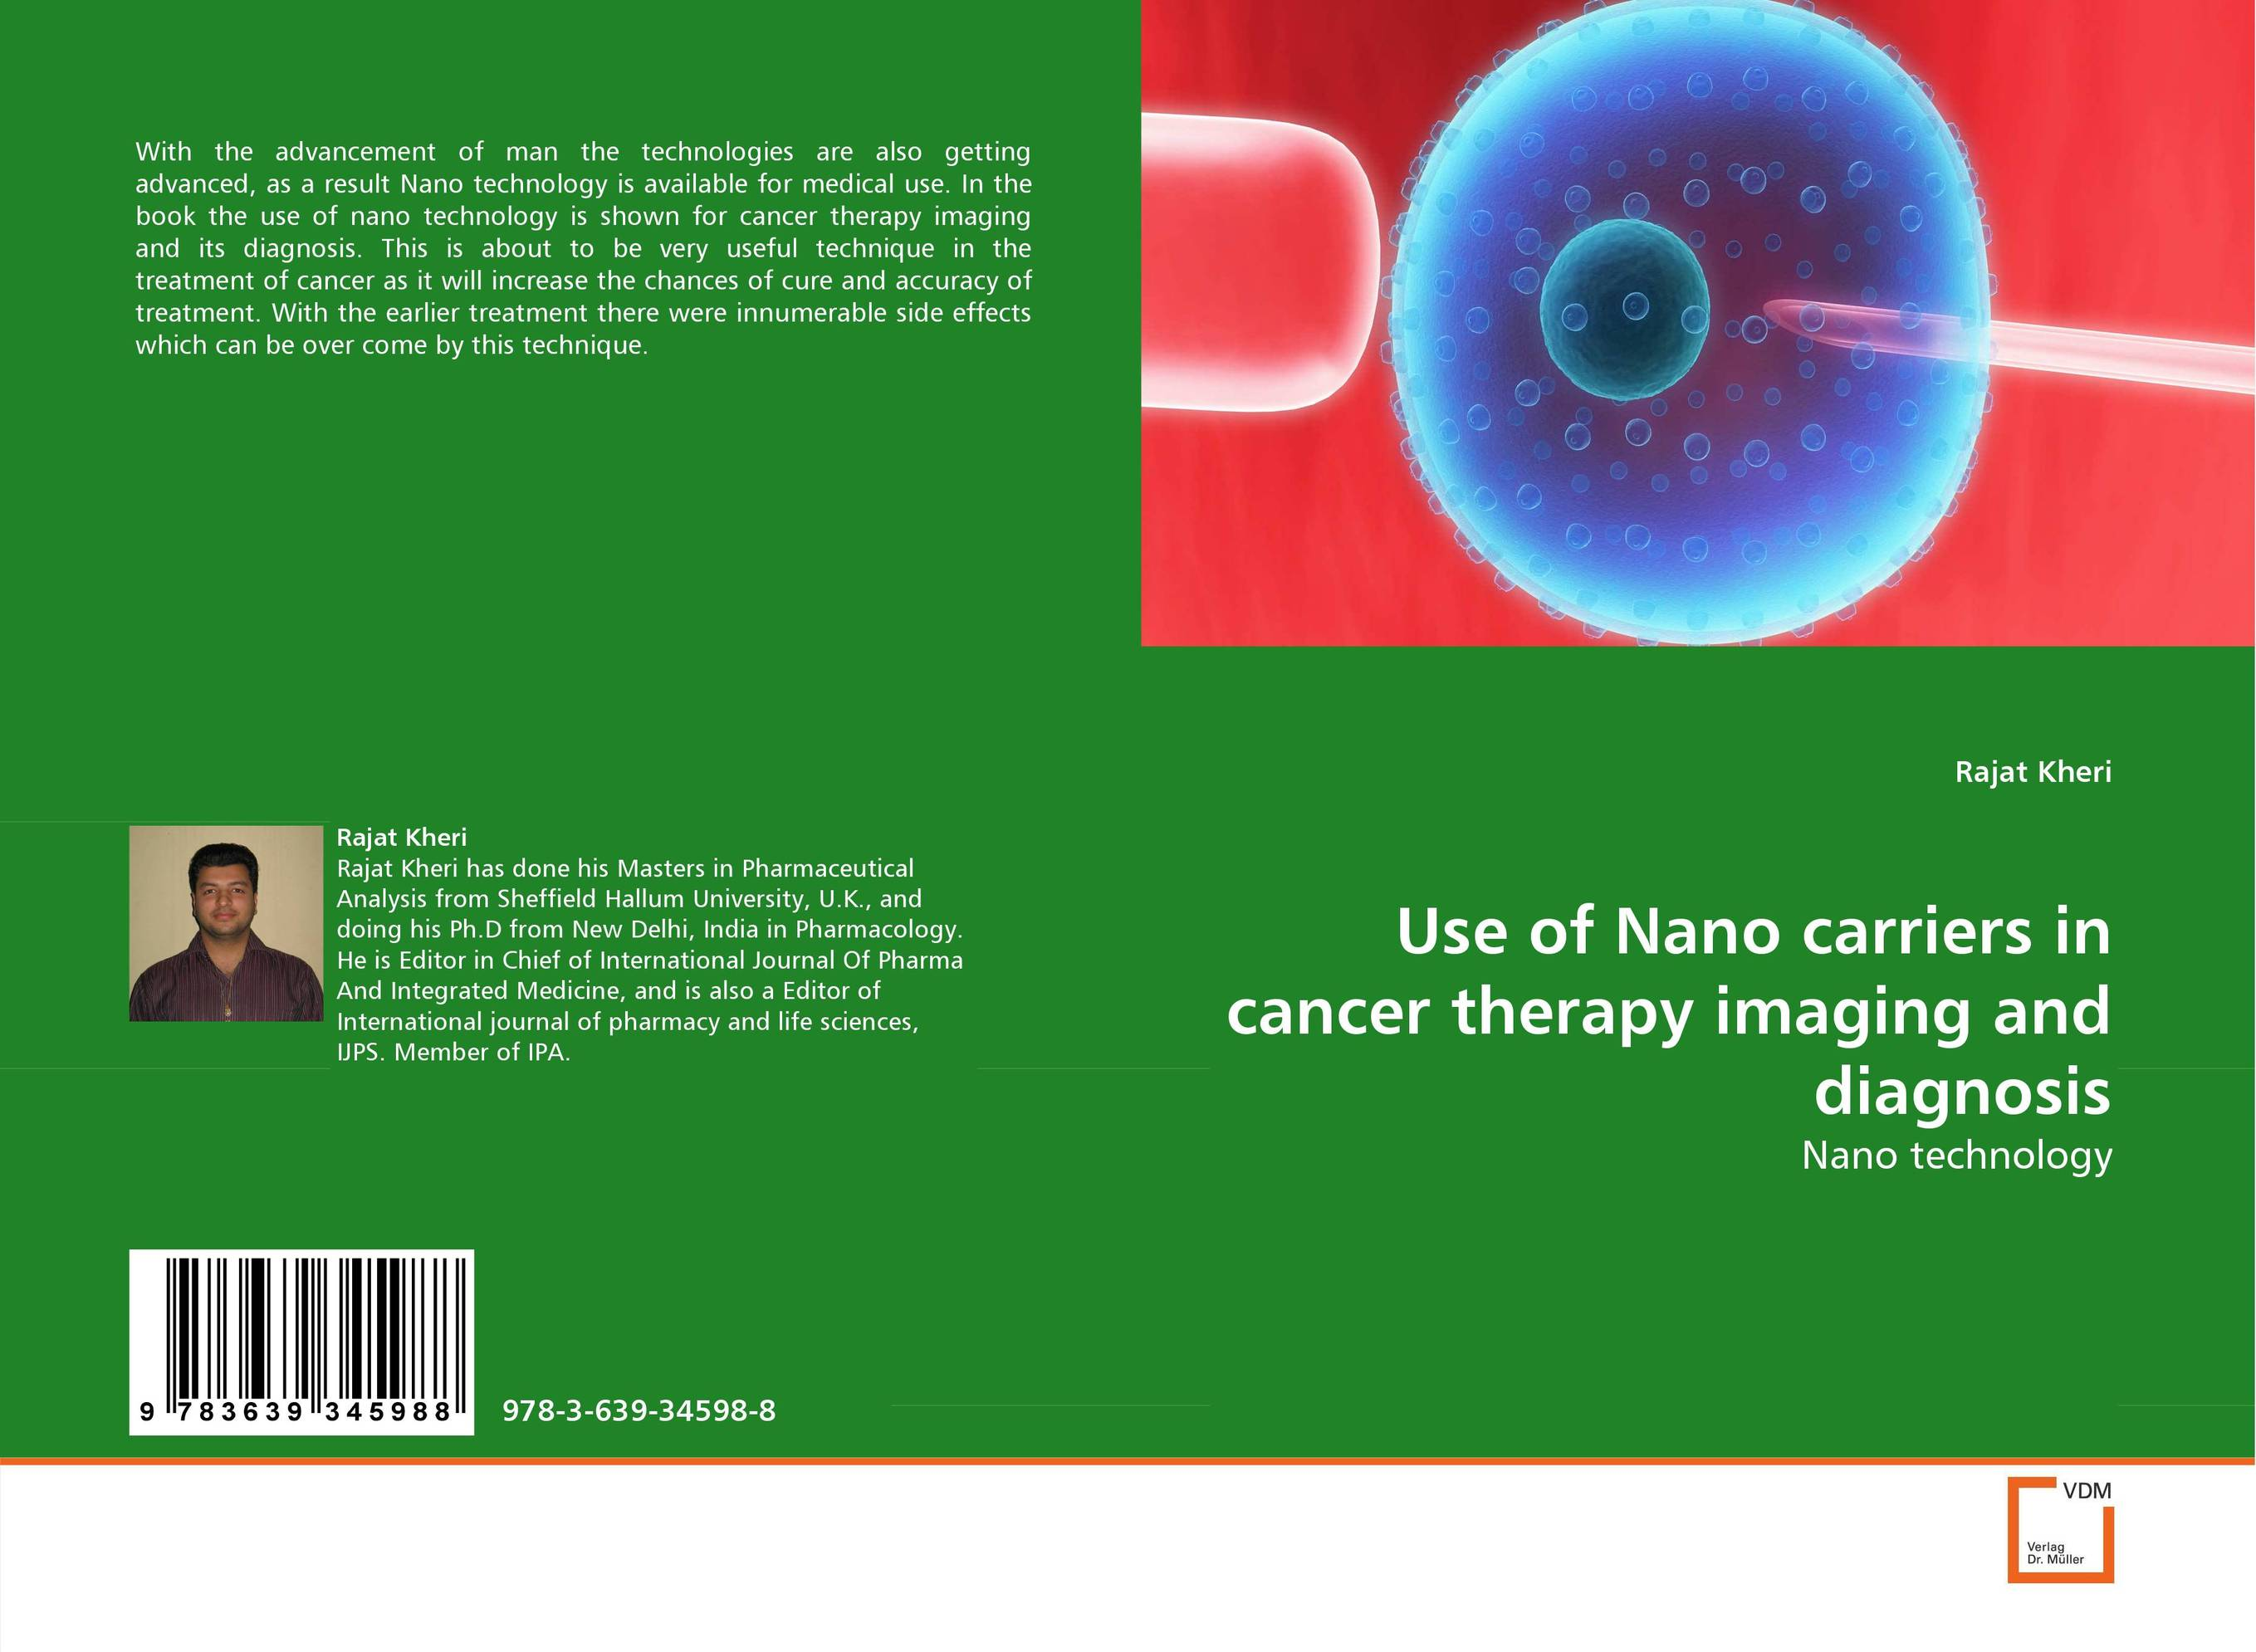 Use of Nano carriers in cancer therapy imaging and diagnosis подсвечник зимний домик blue sky